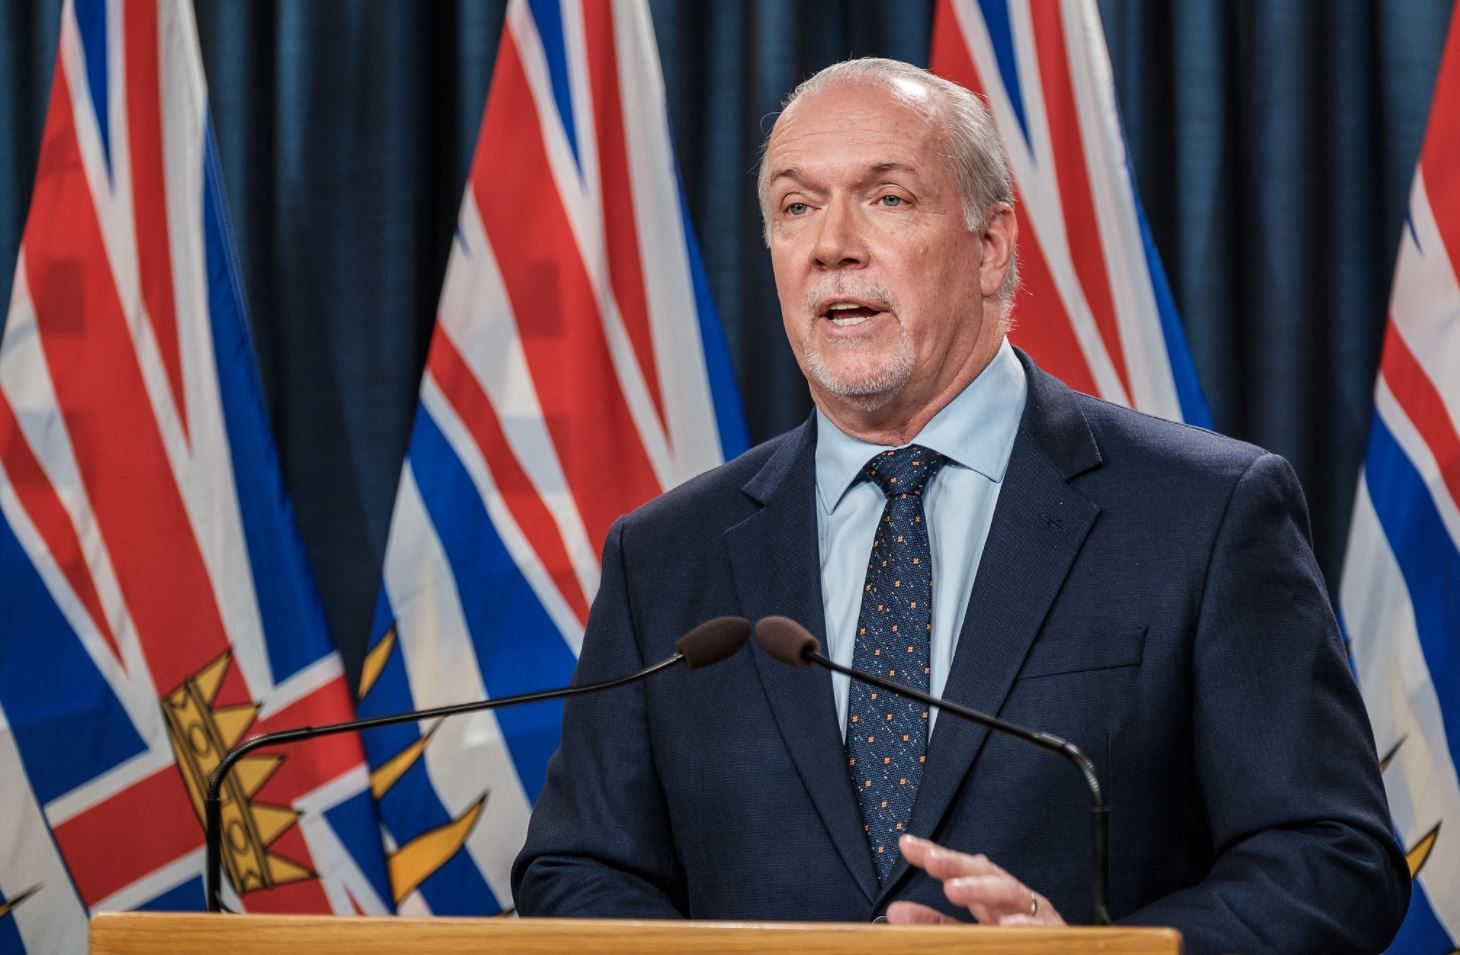 BC steps up enforcement of COVID rules against non-compliant businesses